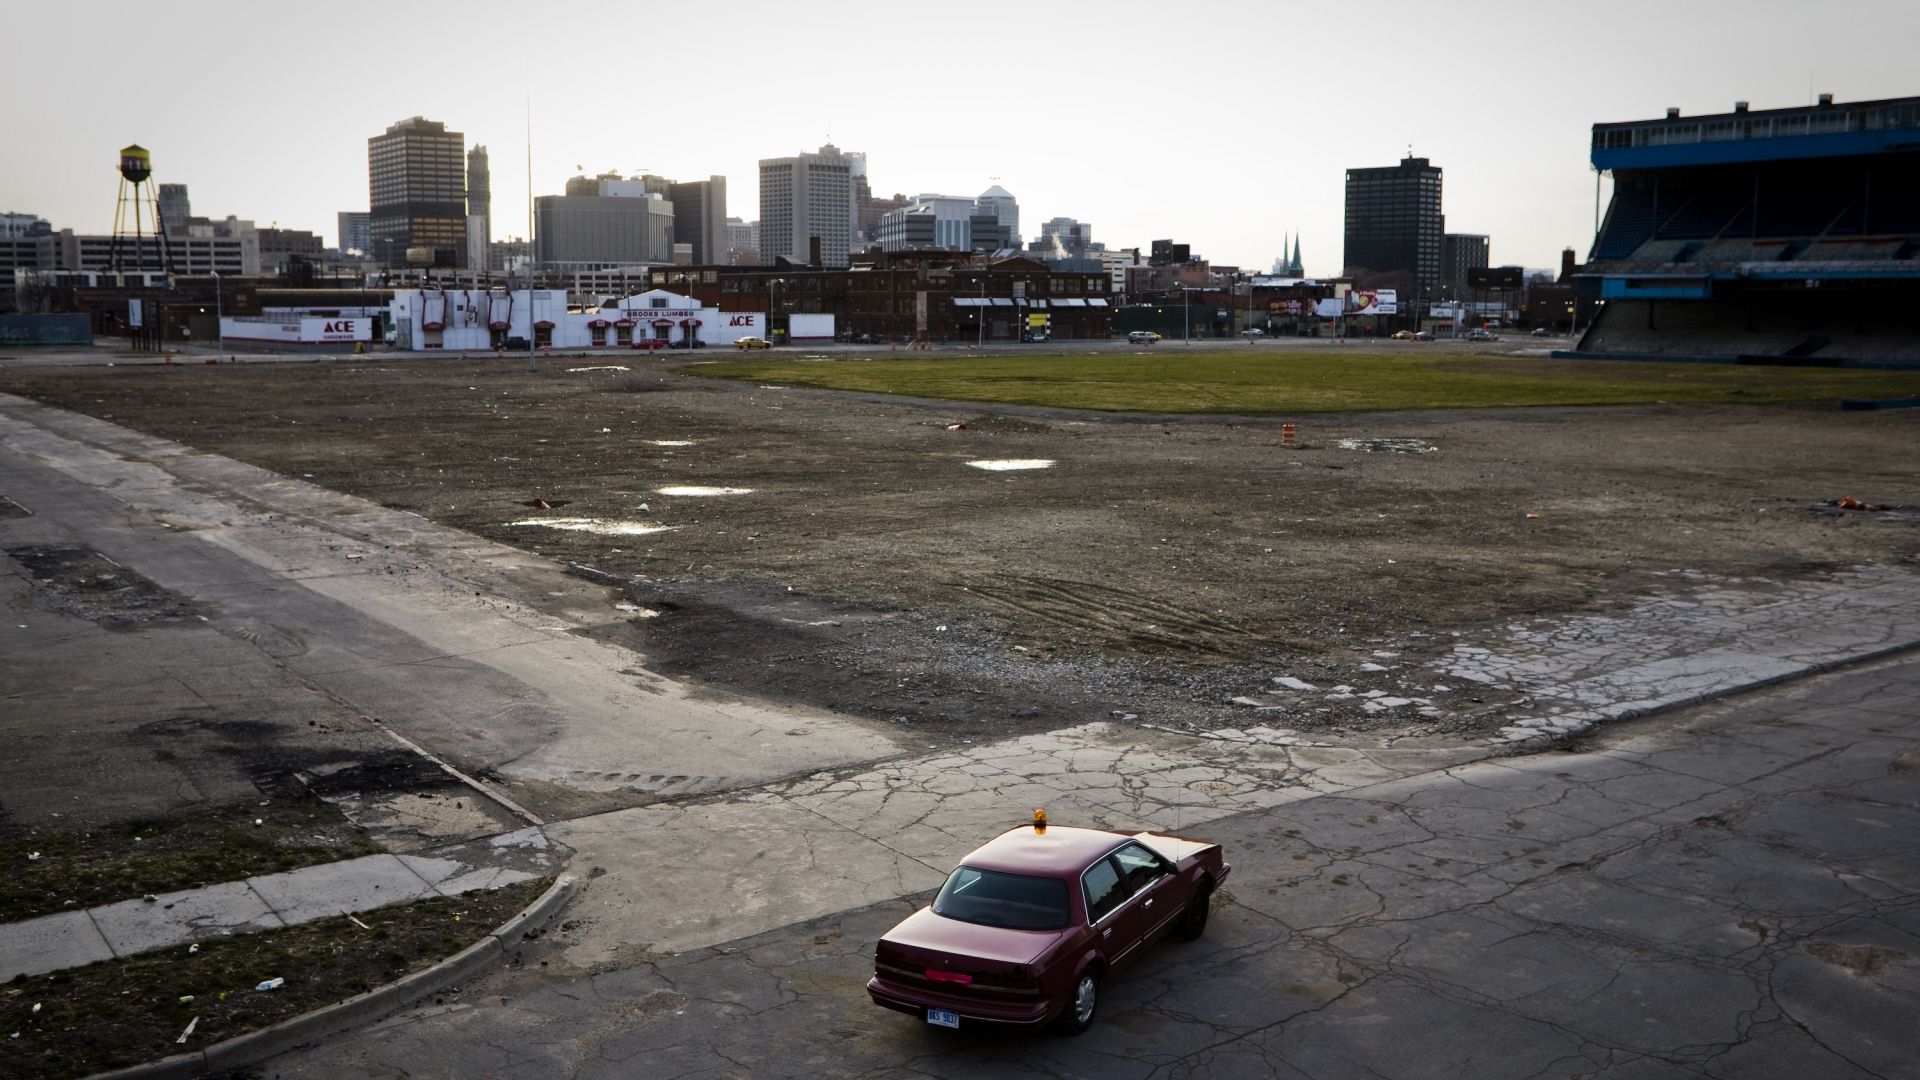 The historic Tiger Stadium baseball field sits in a slow state of decay near the remaining highrise buildings of downtown Detroit. For a rapidly growing population of urban pioneers, the crumbling landscape of Motor City is serving as a stage for experimentation and careful development of a new American Dream. (Credit: William Widmer/Redux)